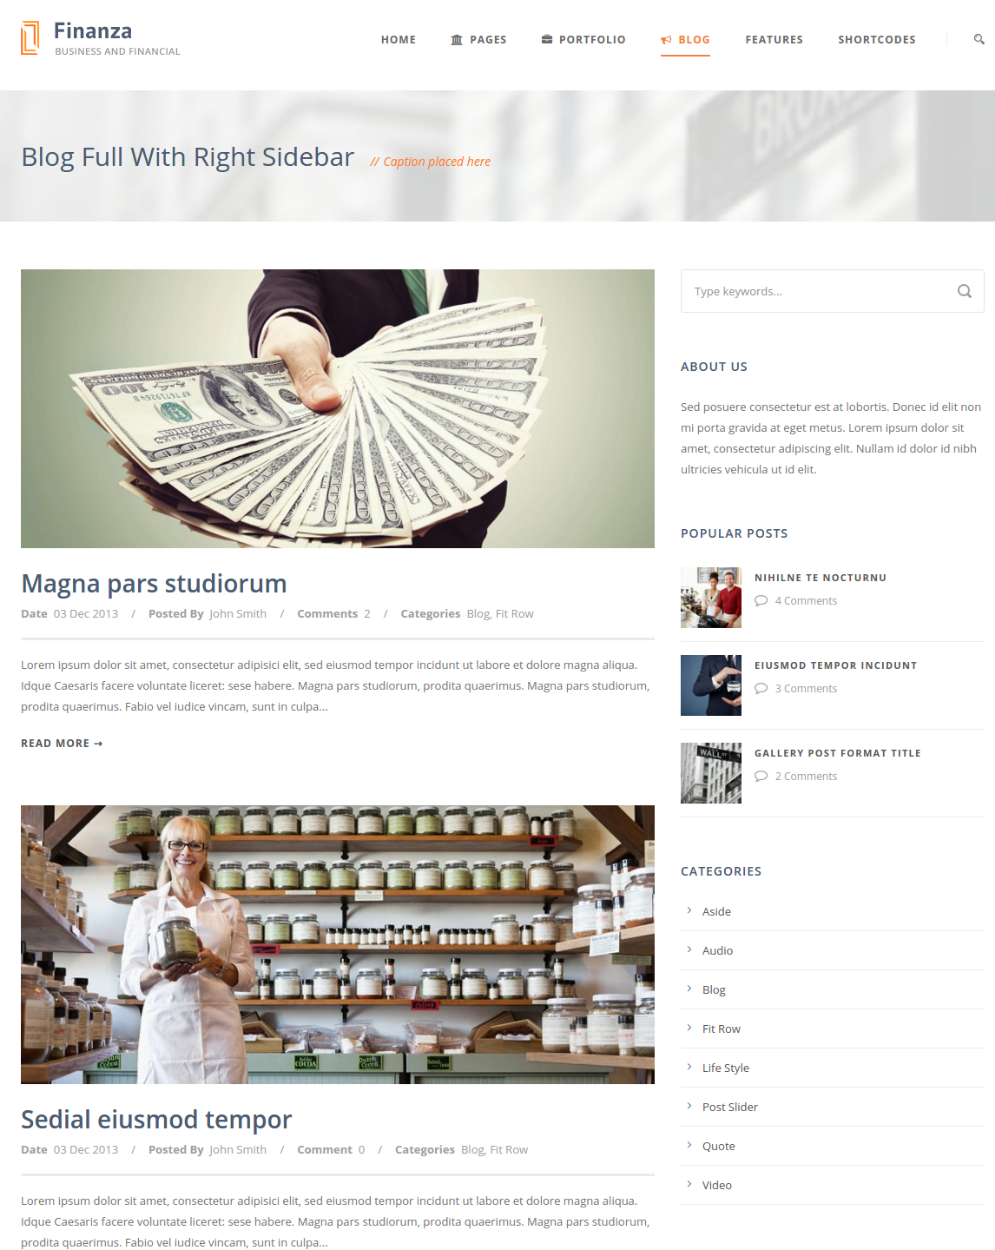 Blog with right sidebar - Finanza